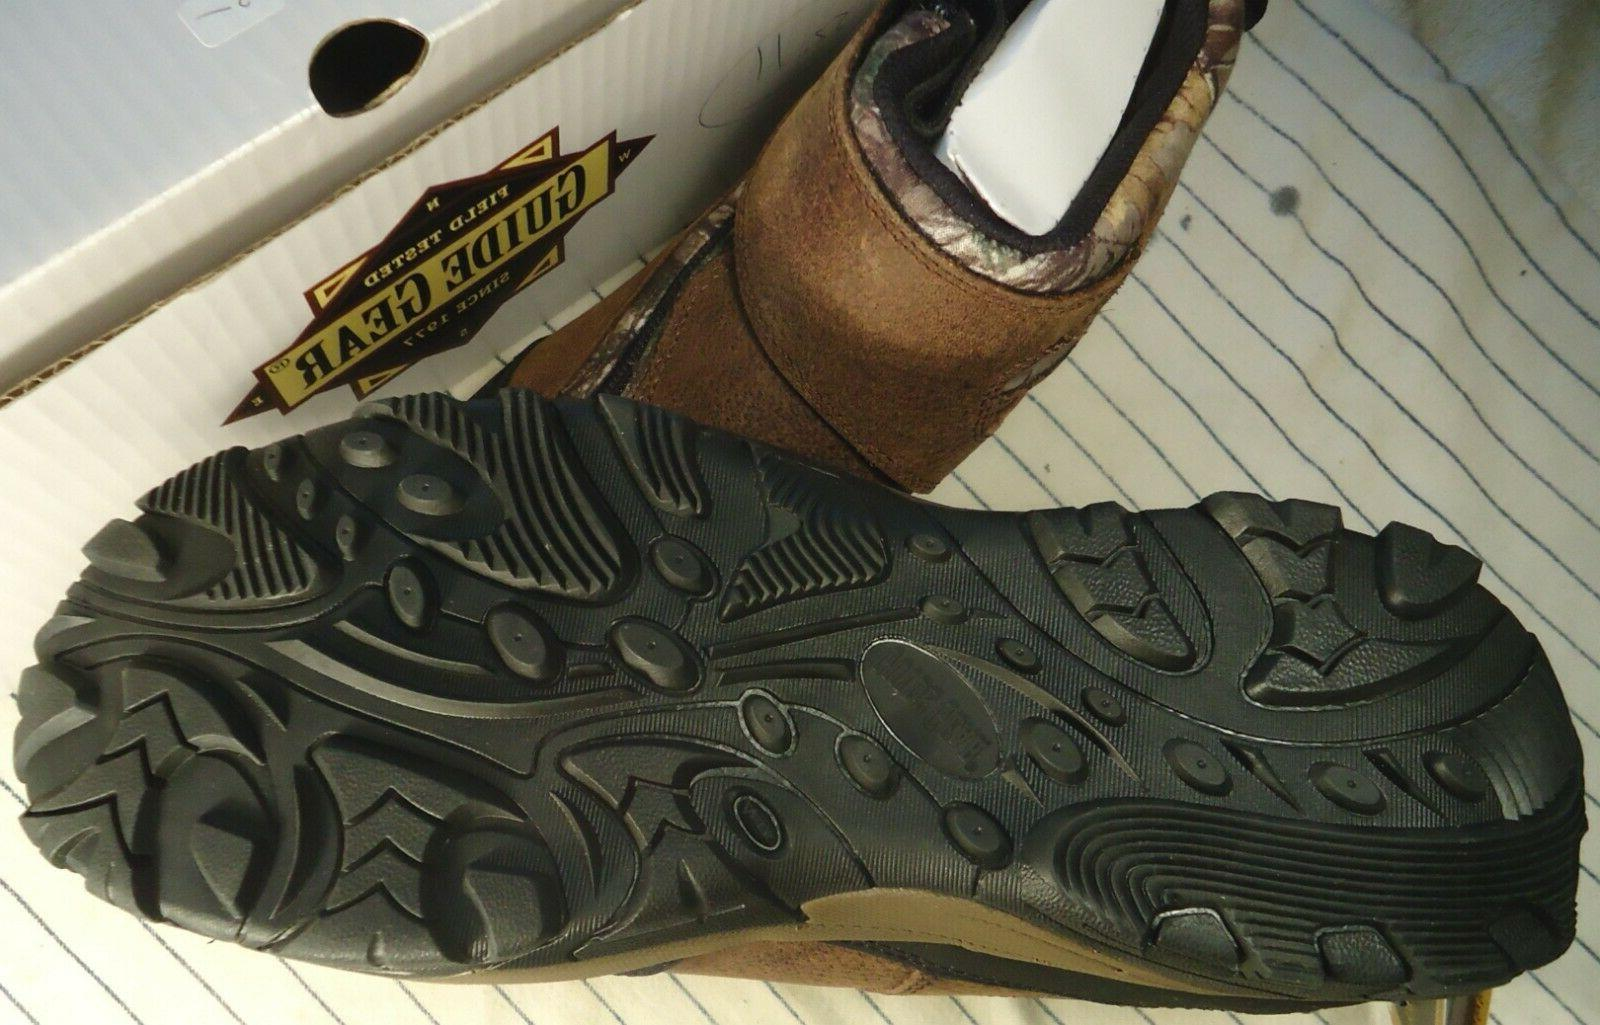 GUIDE 400G Thinsulate Waterproof Zip Hunting Boots 11 Camo/Brown